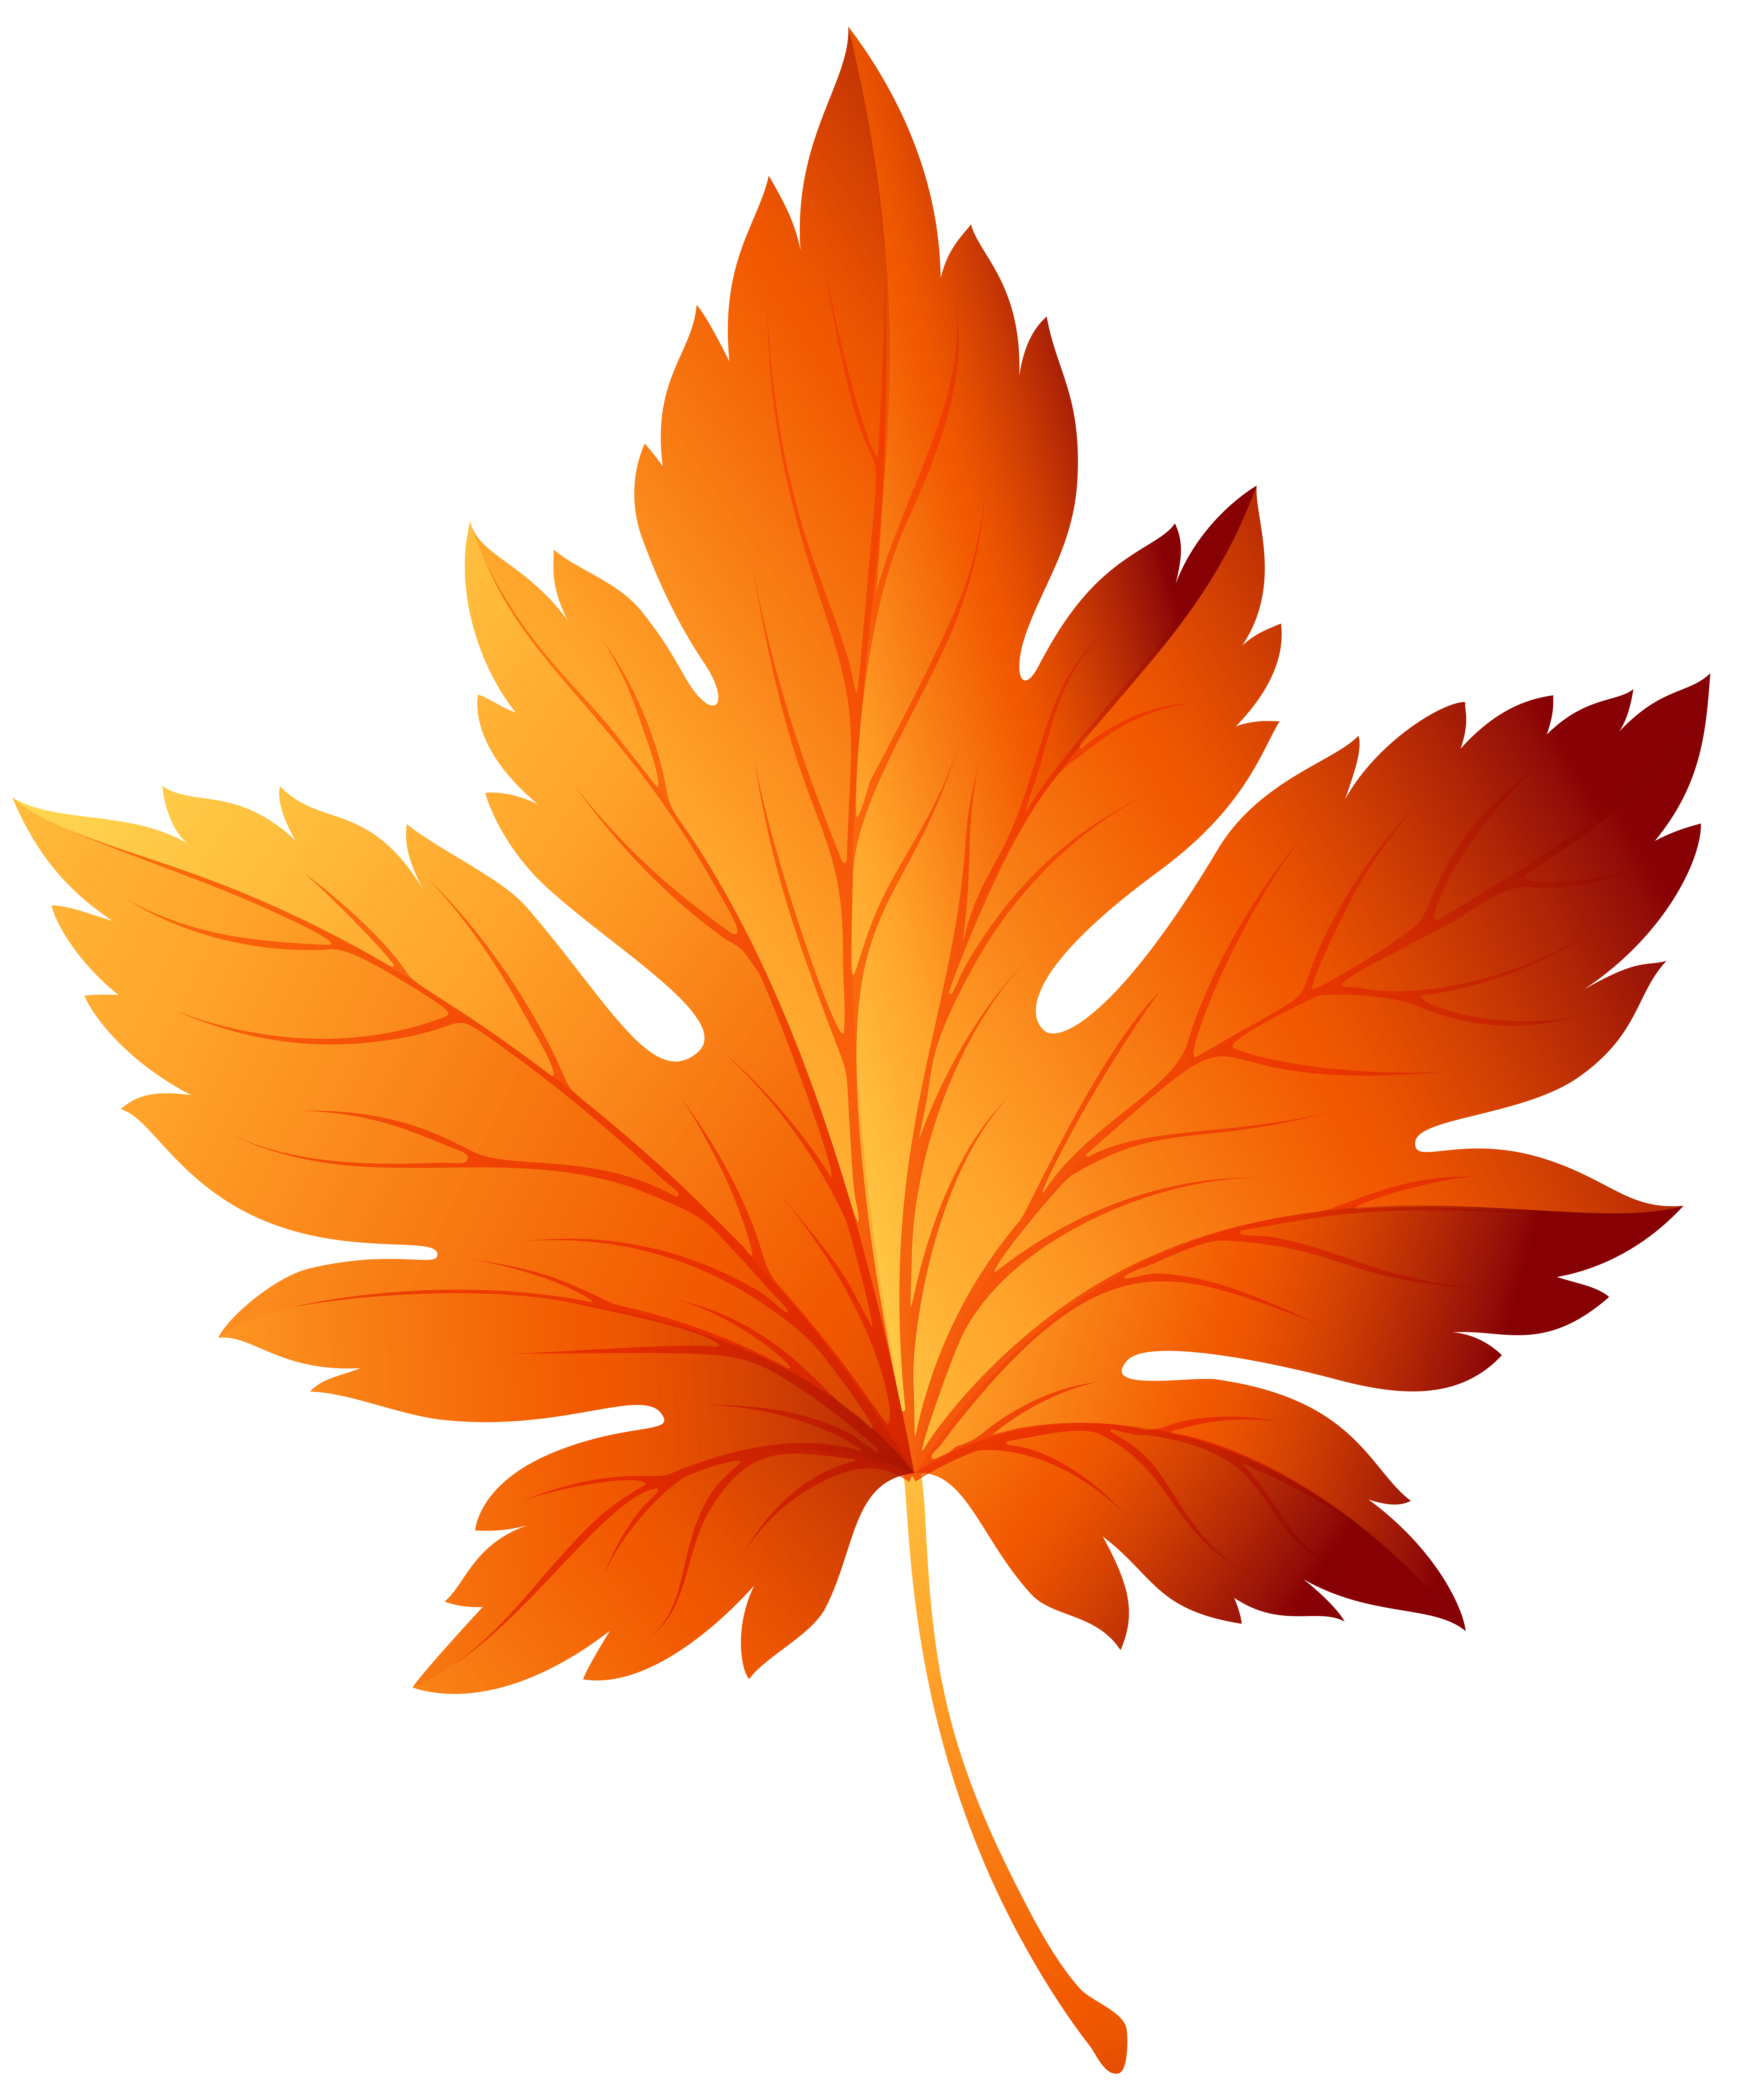 Autumn leaf clipart 20 free Cliparts | Download images on ...